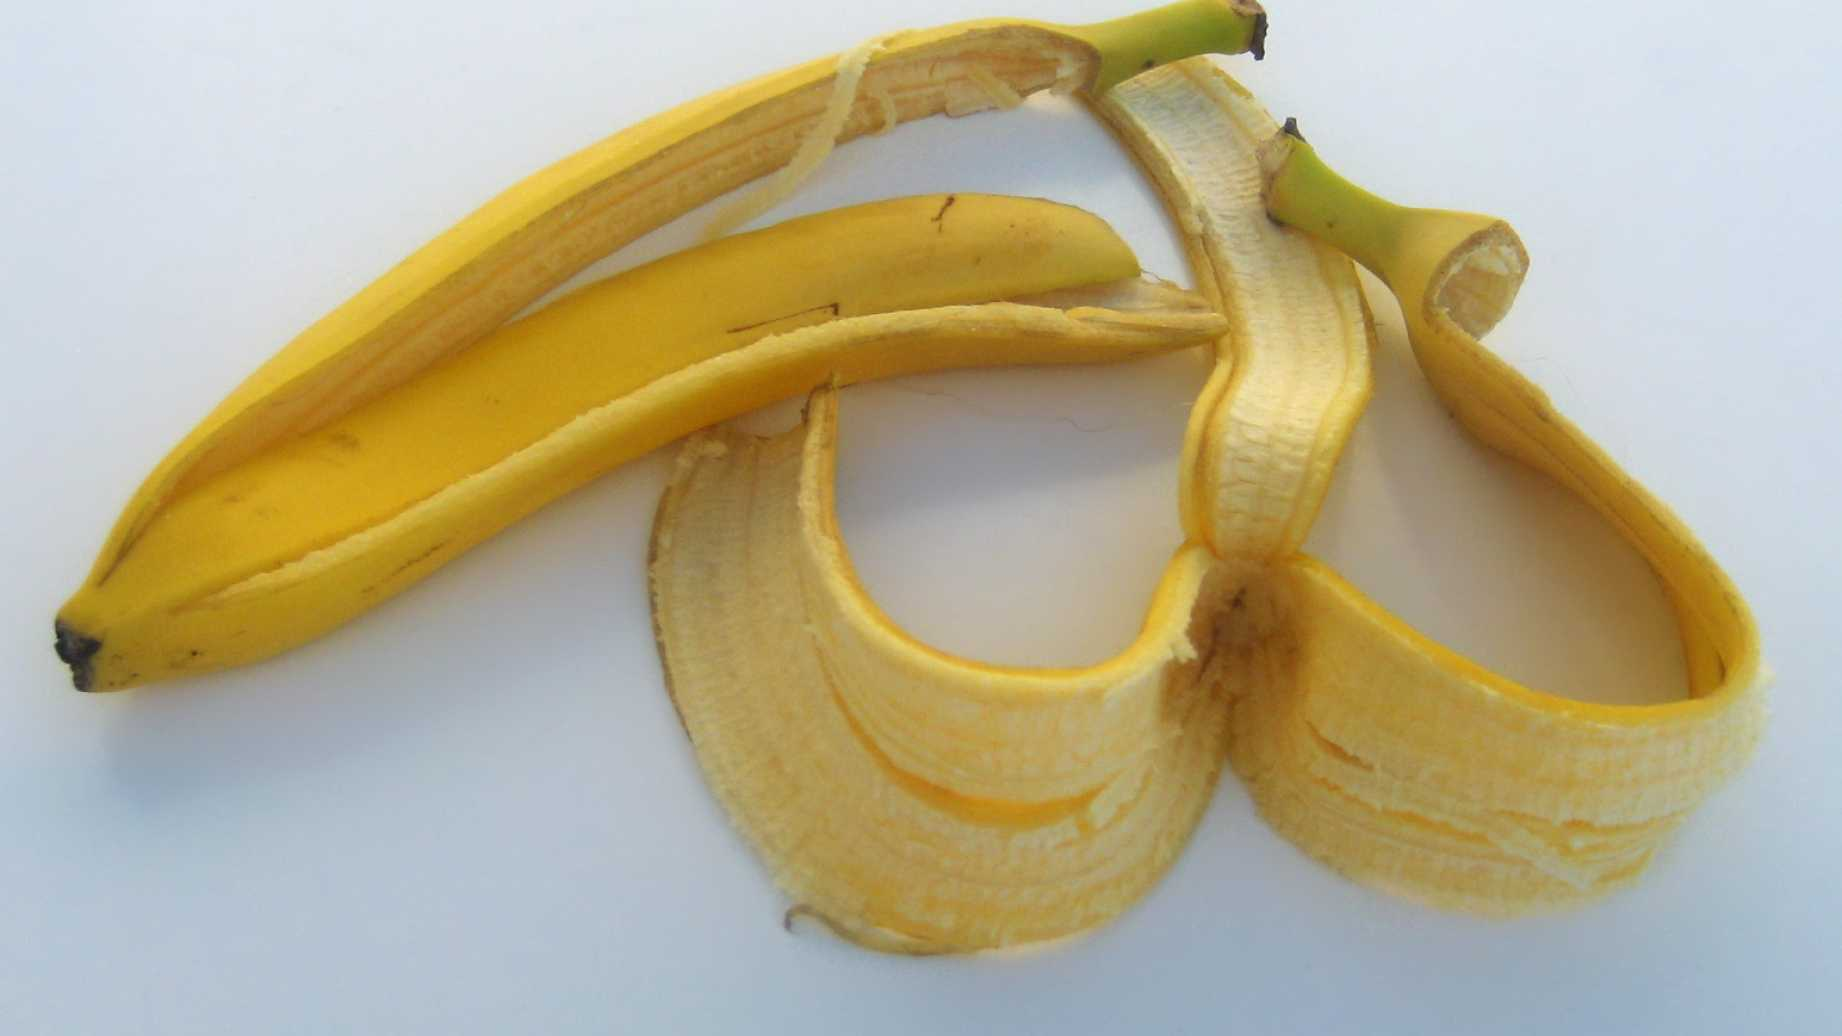 Ole Miss Banana Peel